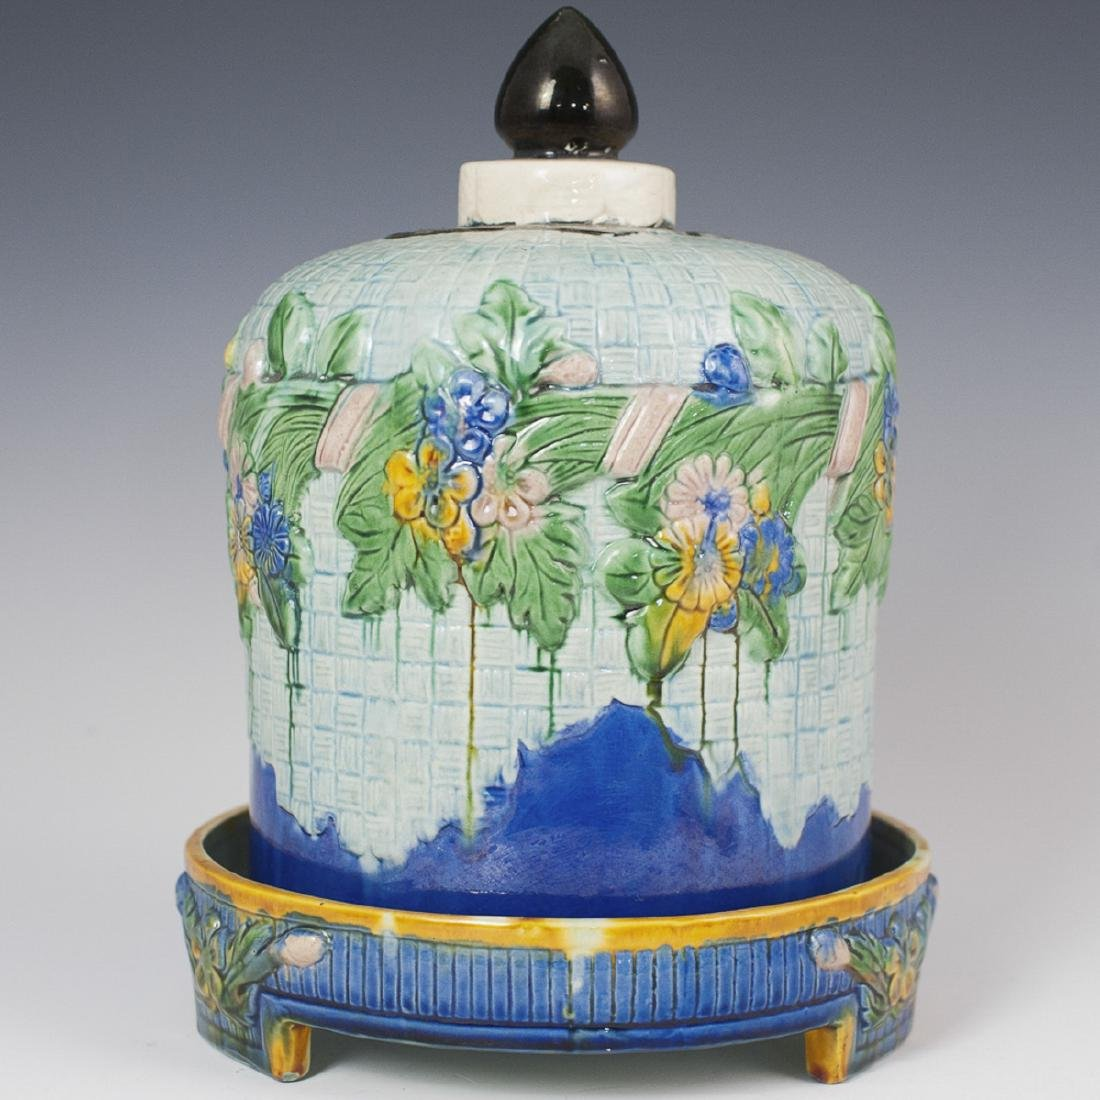 Antique Majolica Lidded Cheese Dome